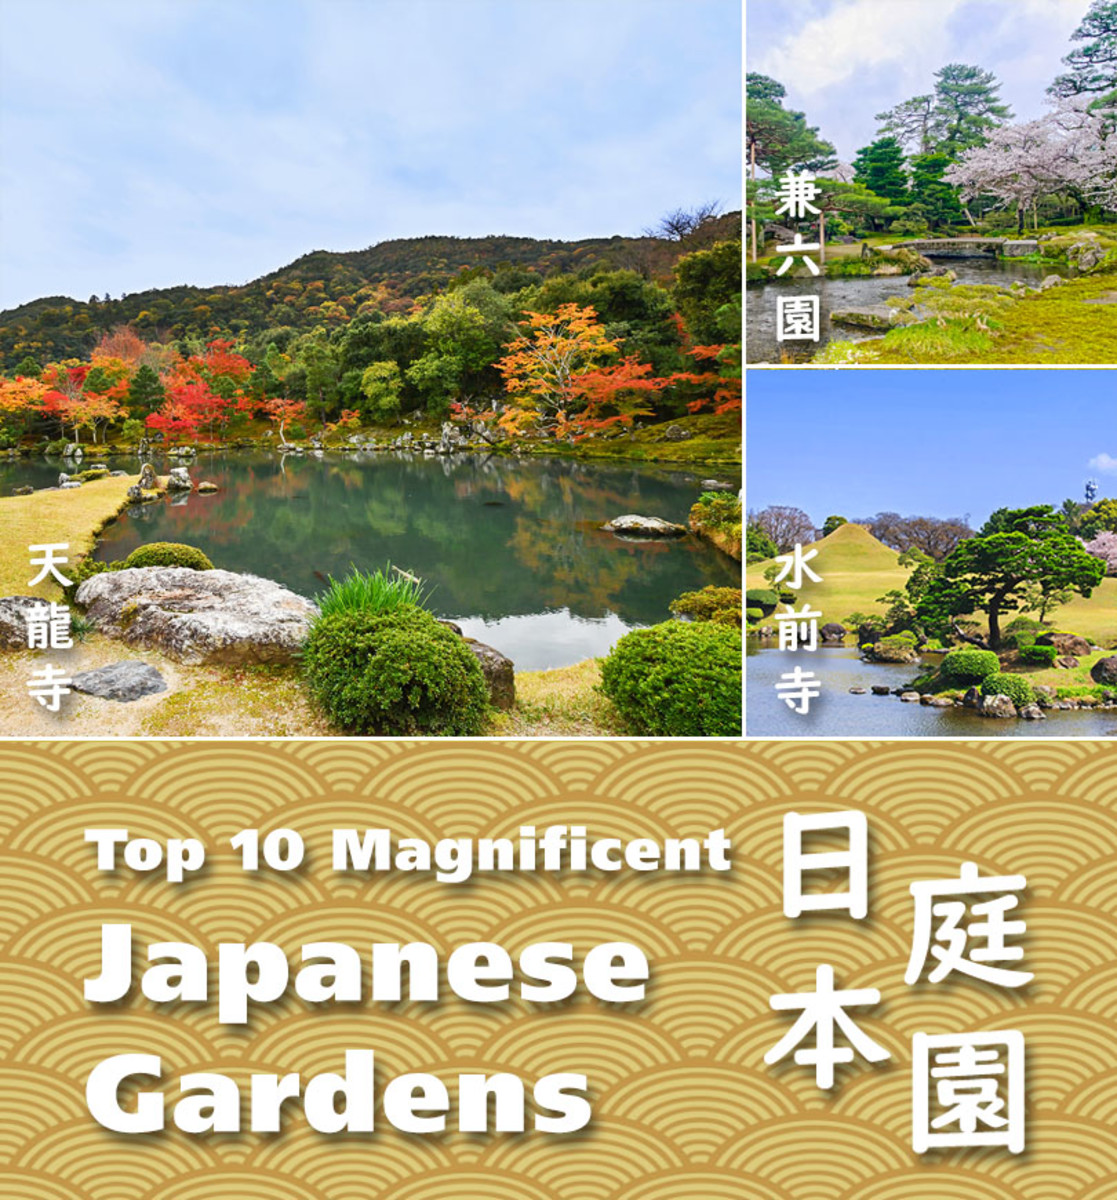 Have you been to any of these gorgeous Japanese Gardens?